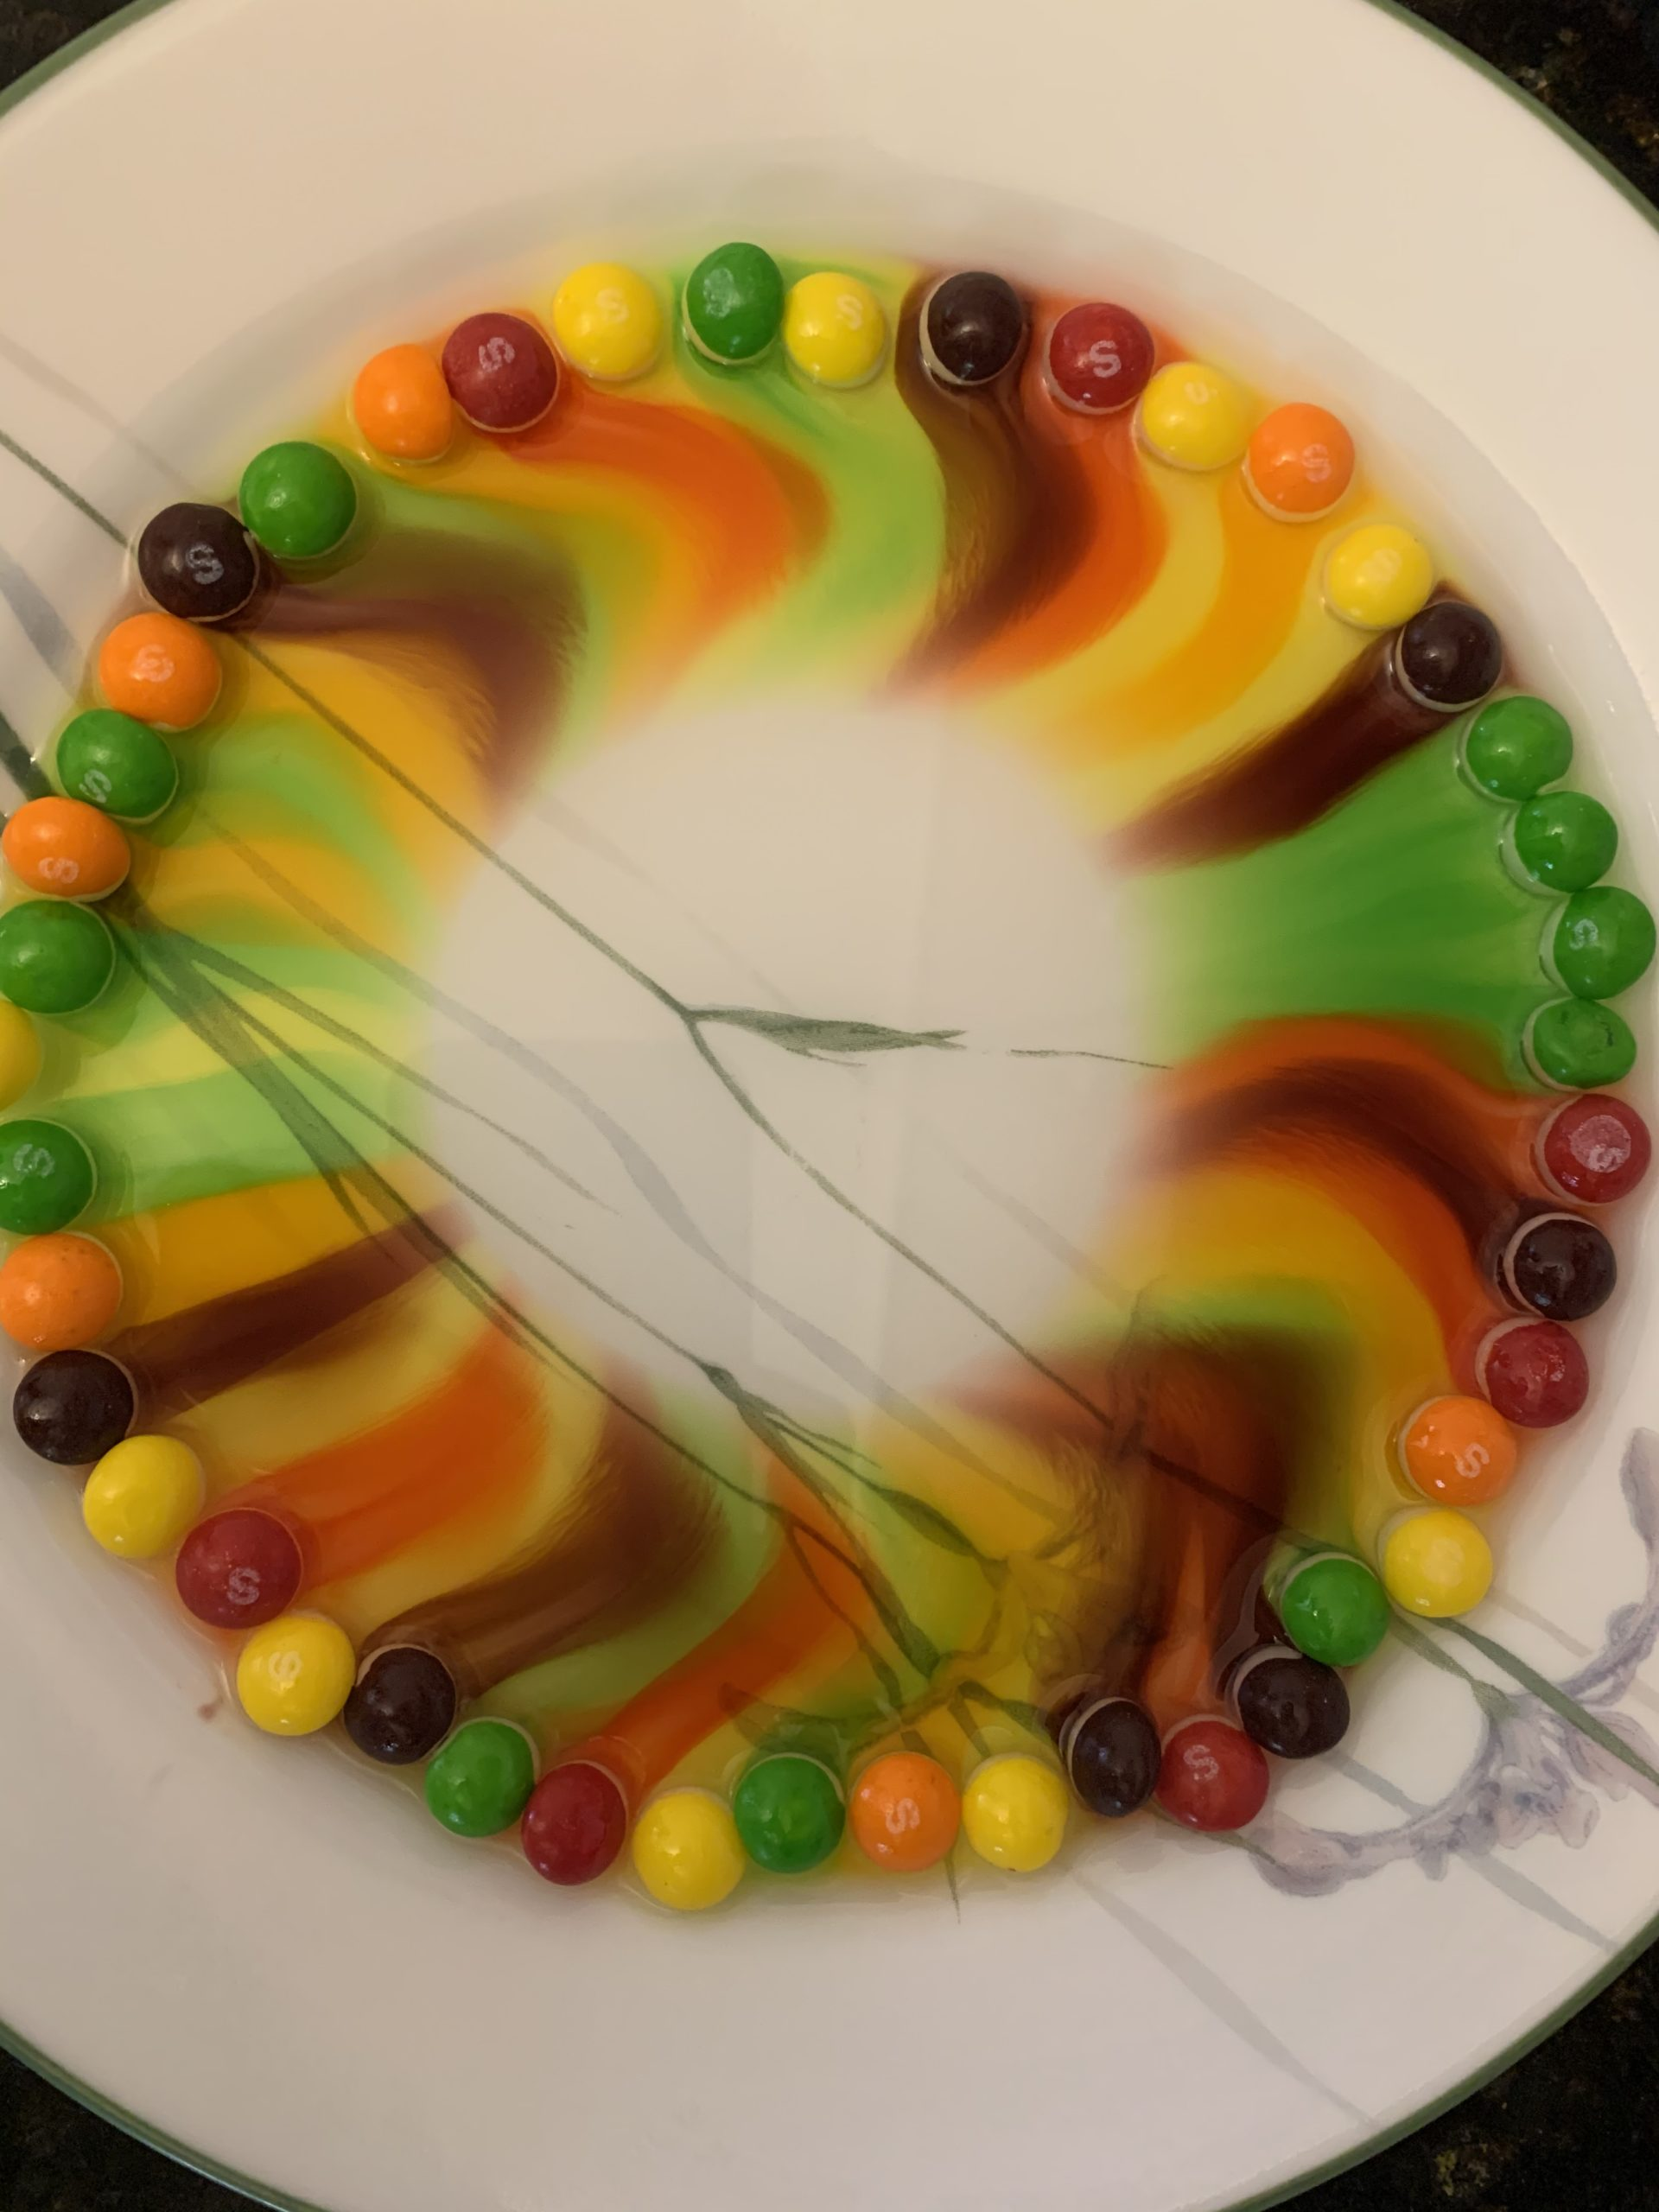 Rainbow with Candies